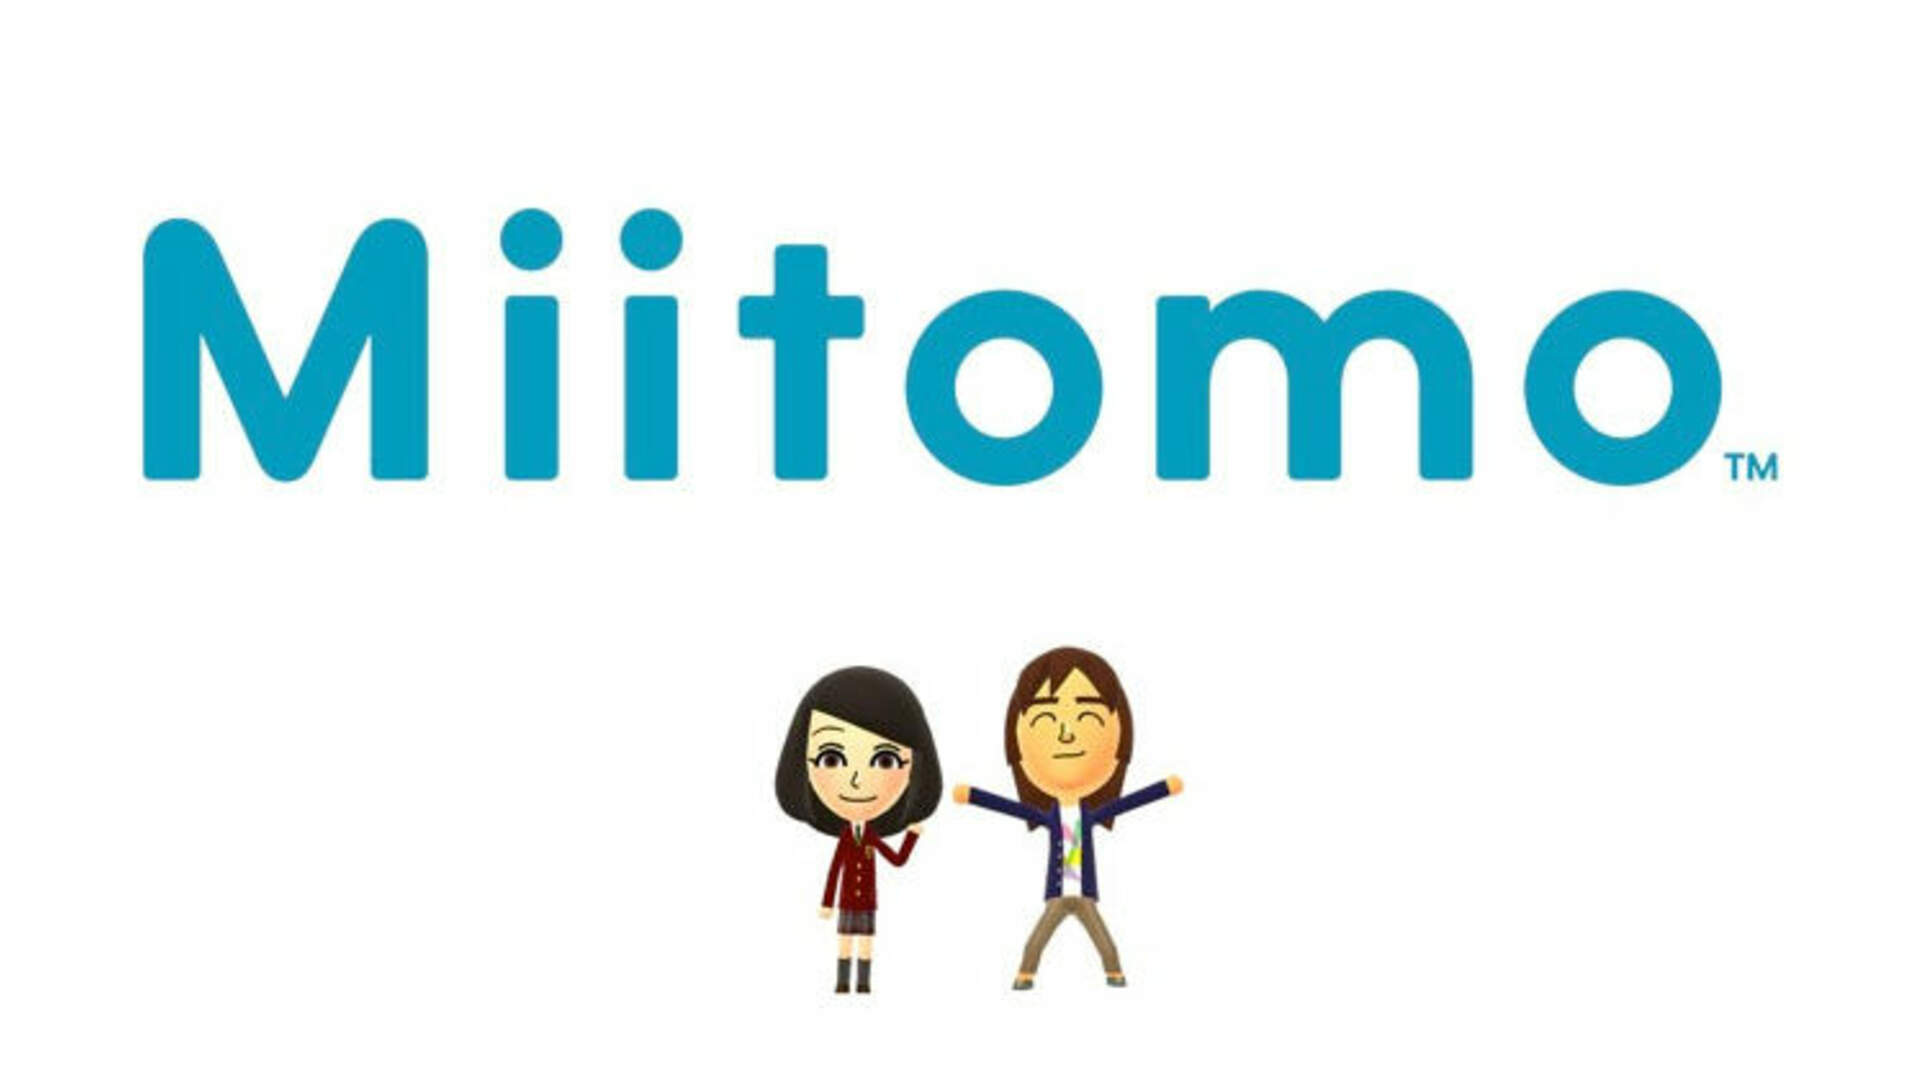 Miitomo is Almost Ready to Go, But Where's the Rest of Nintendo's Mobile Strategy?